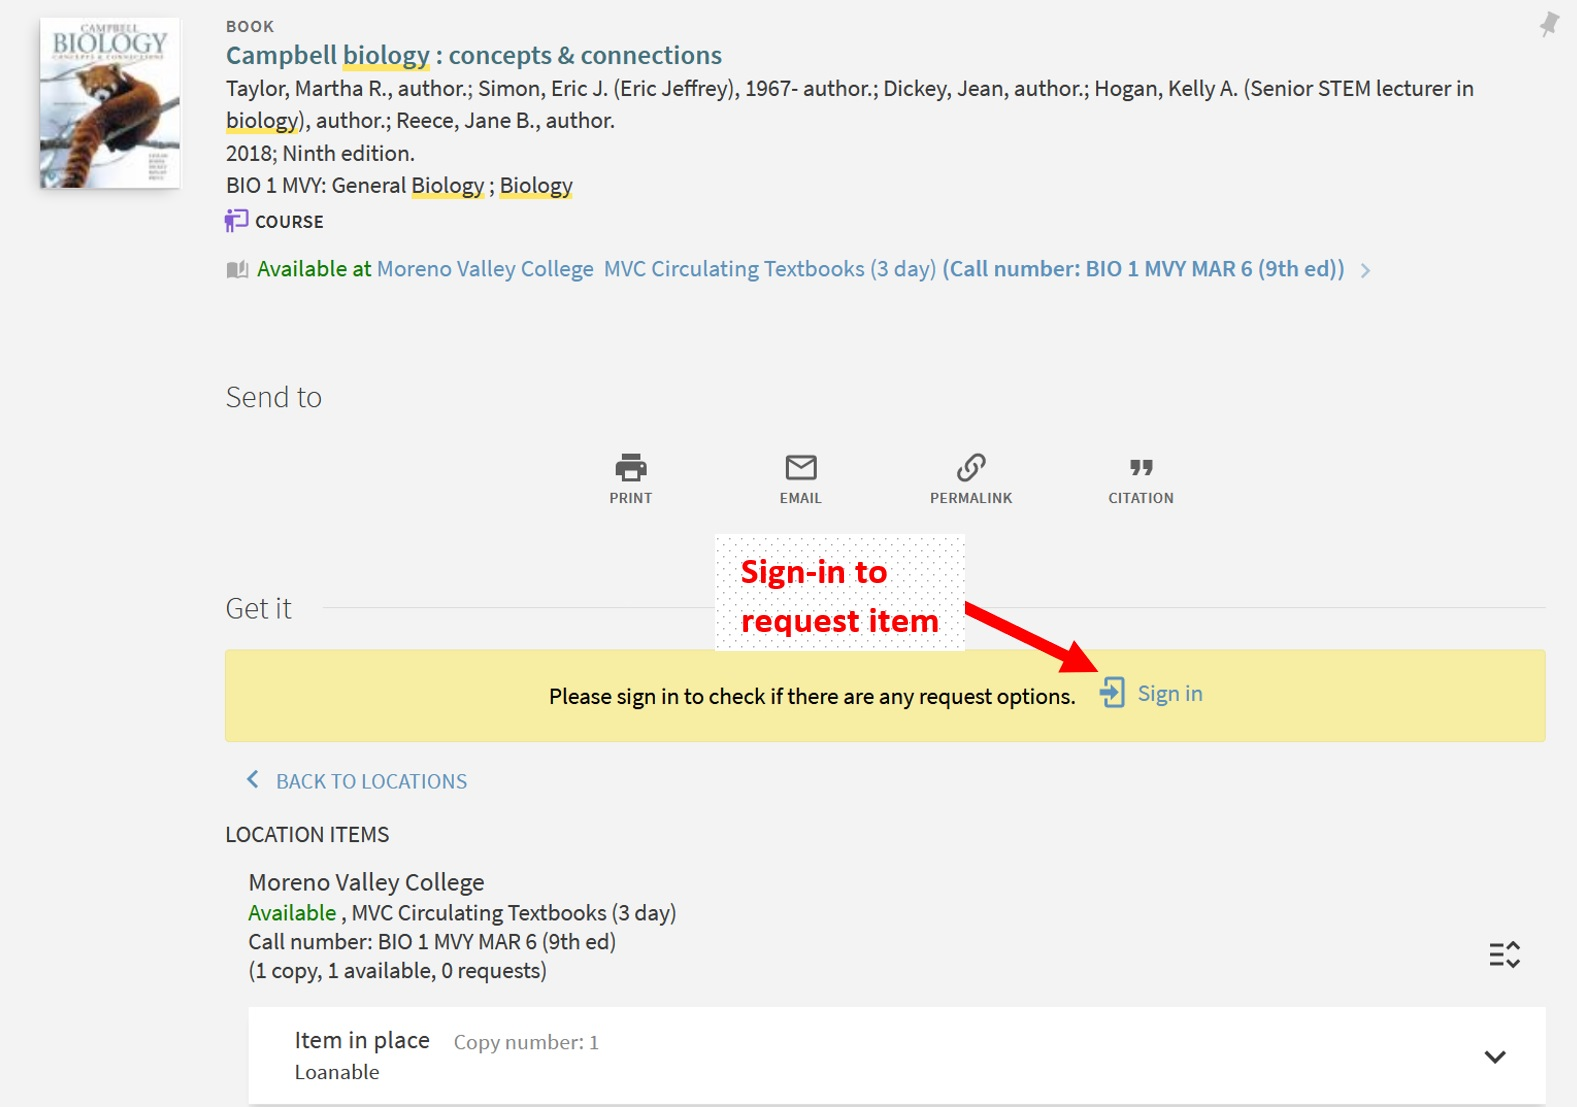 Catalog record screenshot of how to sign-in to account